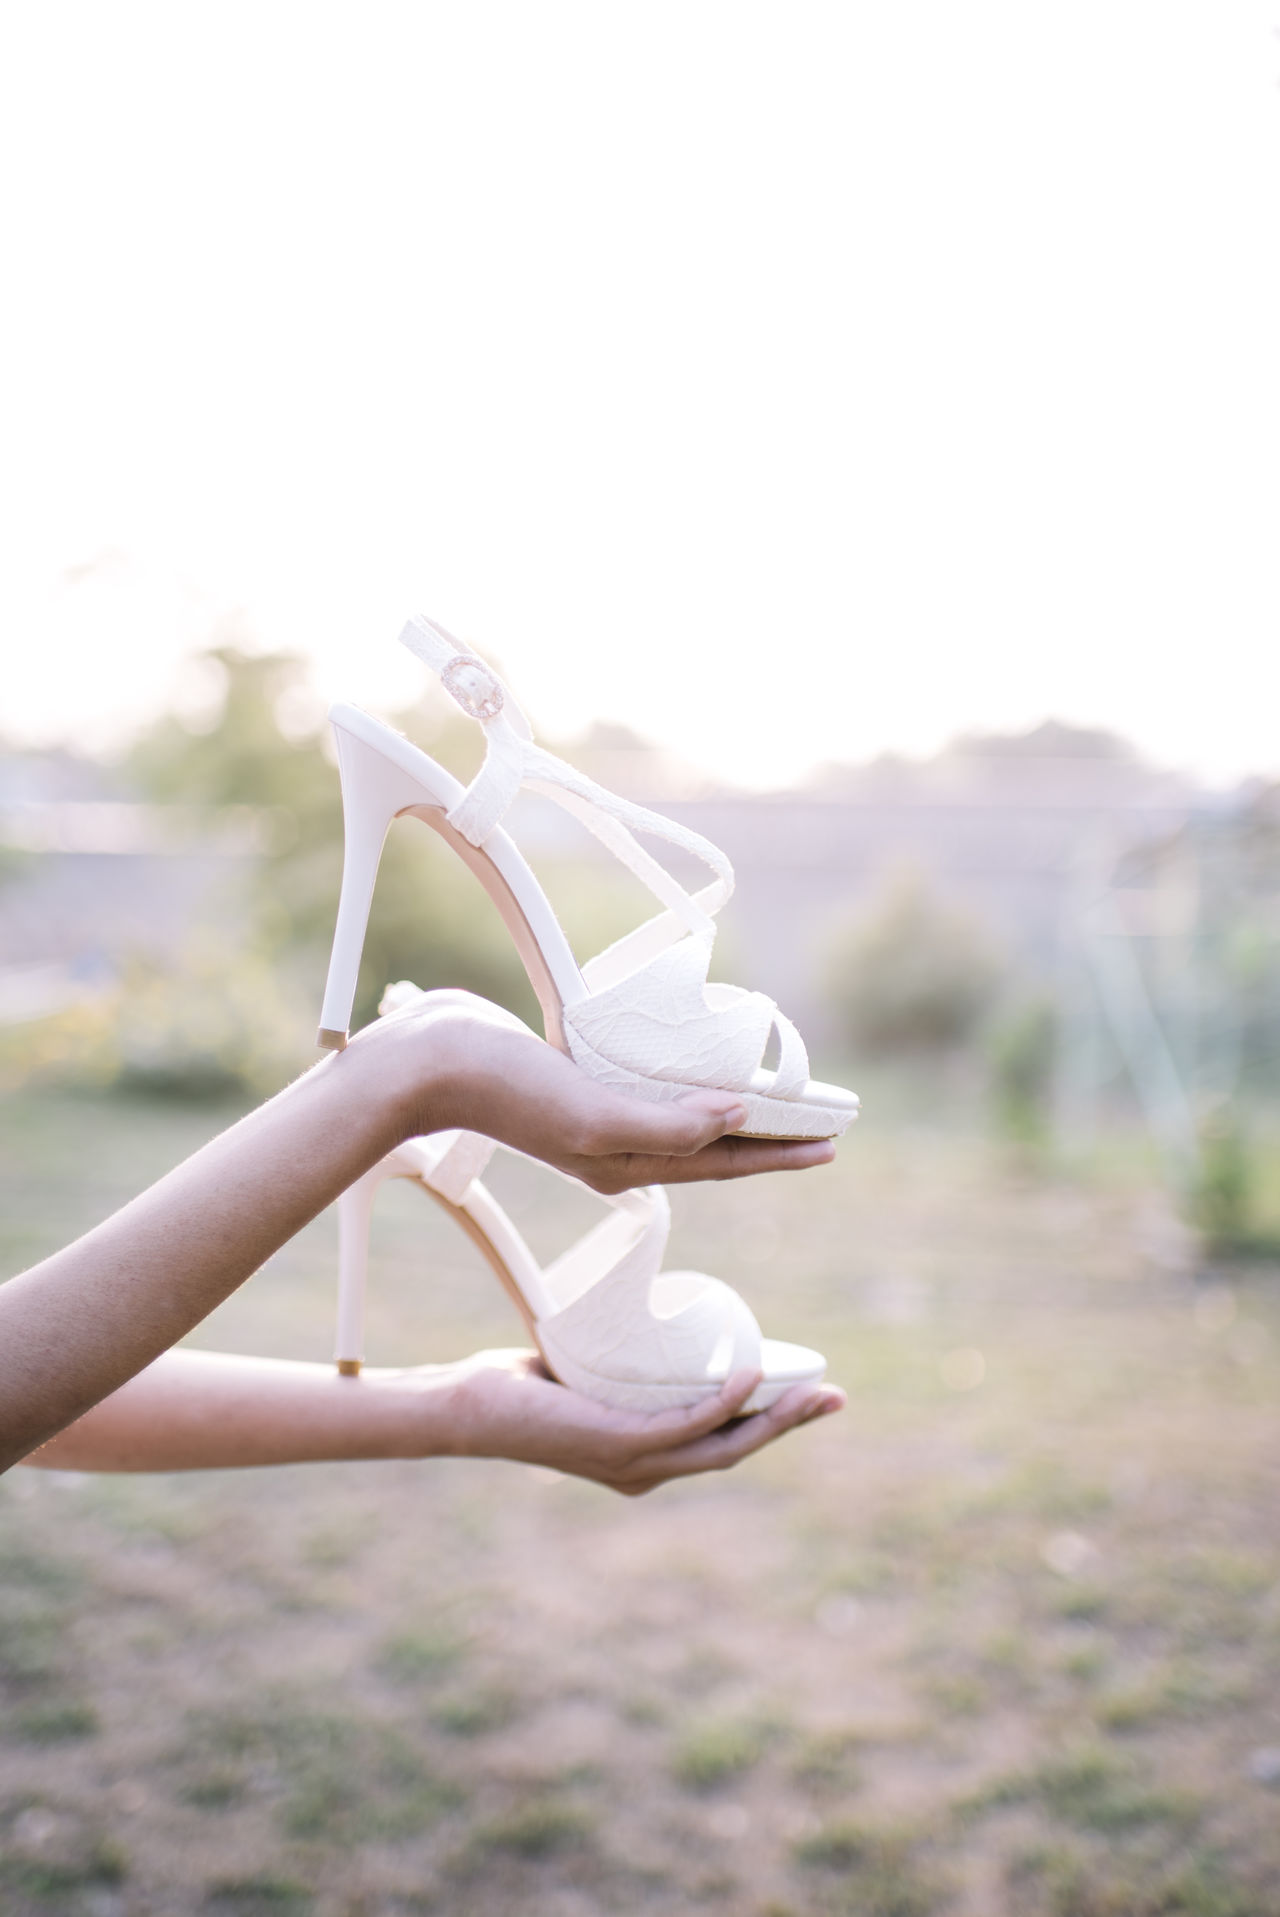 Bride Shoes Beauty In Nature Bride Shoes Close-up Day Detail Outdoors Shoes Wedding Shoes